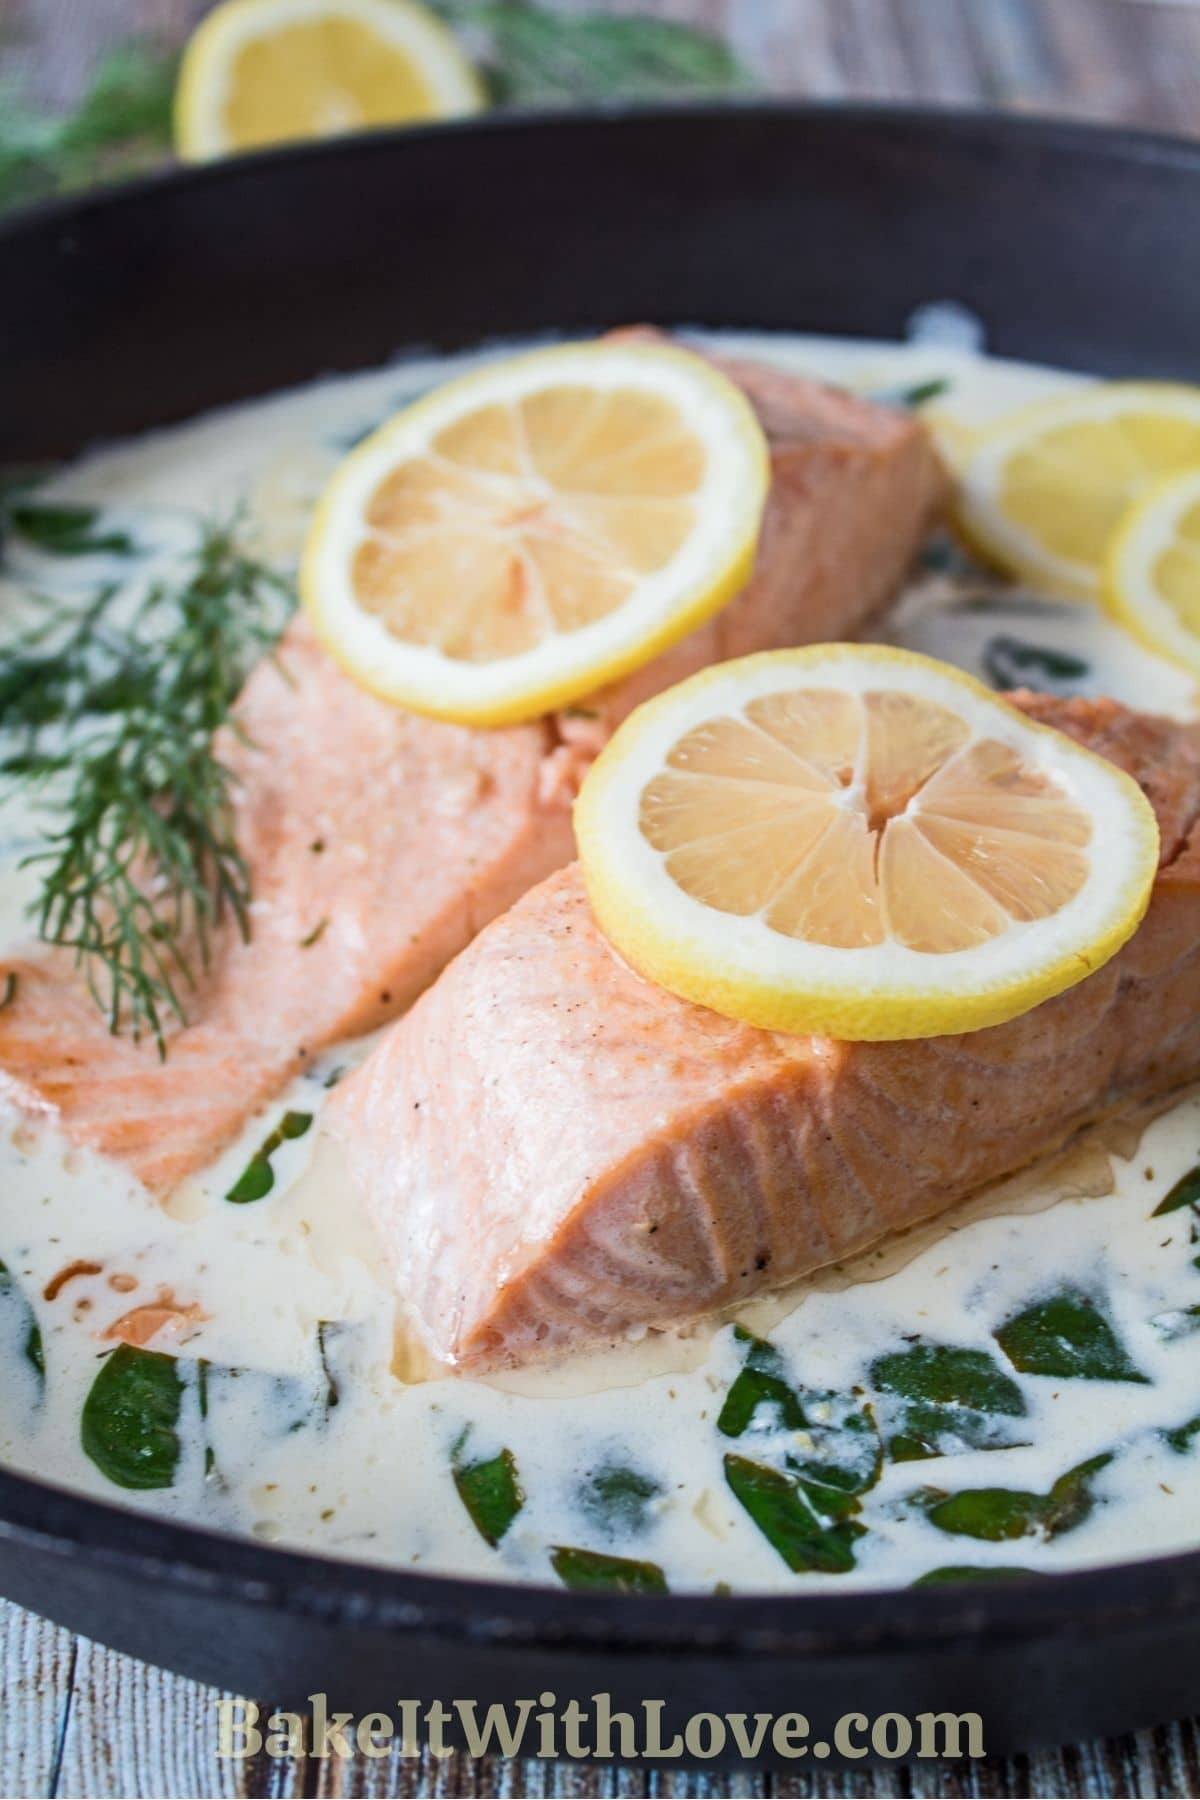 Perfectly pan-fried salmon in creamy white wine sauce with lemon slices and fresh dill weed.